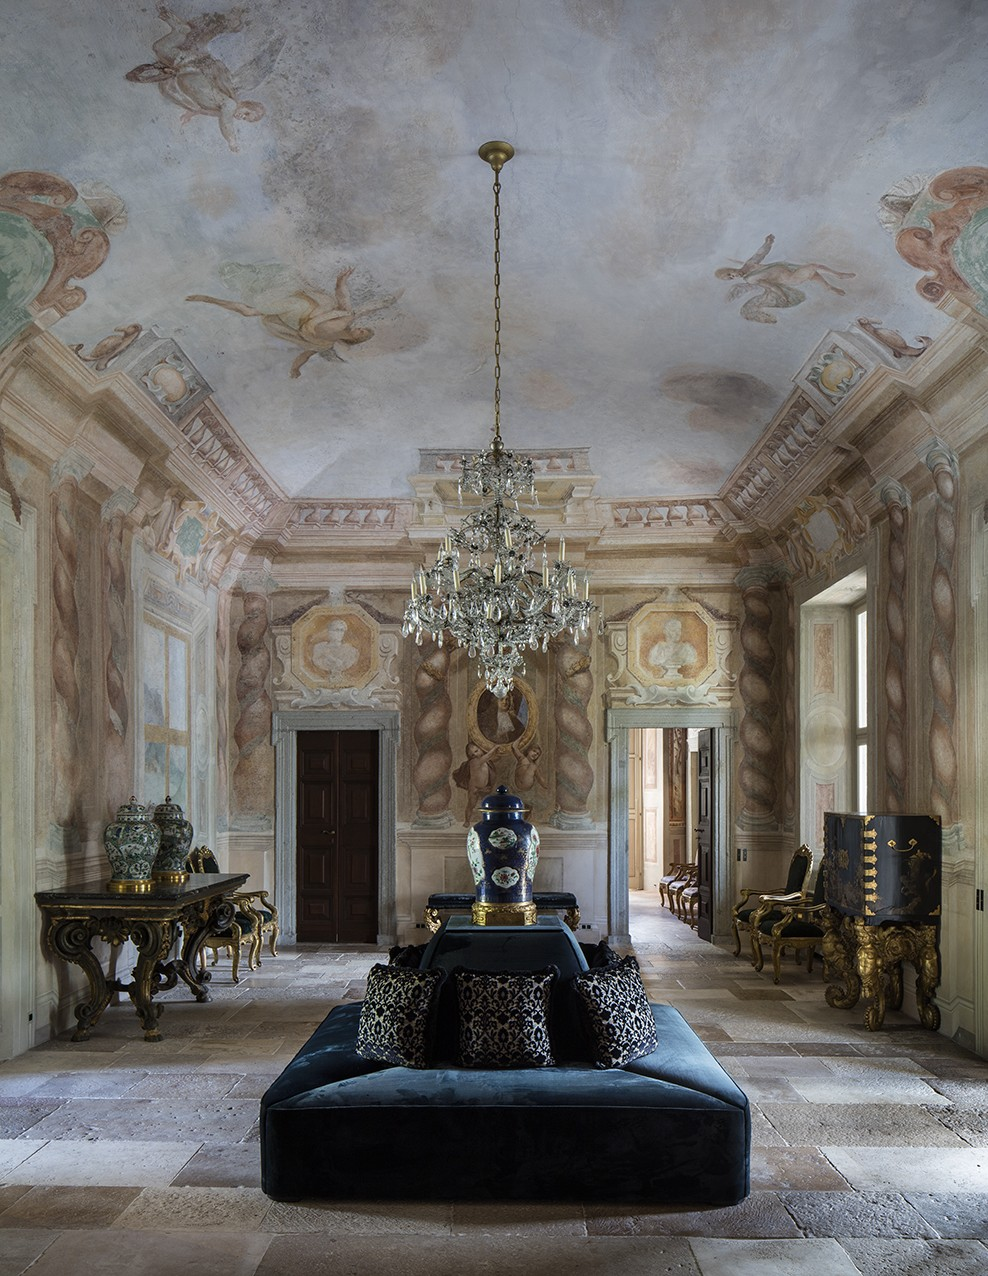 Villa Balbiano lake Como historical property available for exclusive rental ad events magnificent Grand Salon on ground floor 17th century frescoes chandelier antique furniture stone floor